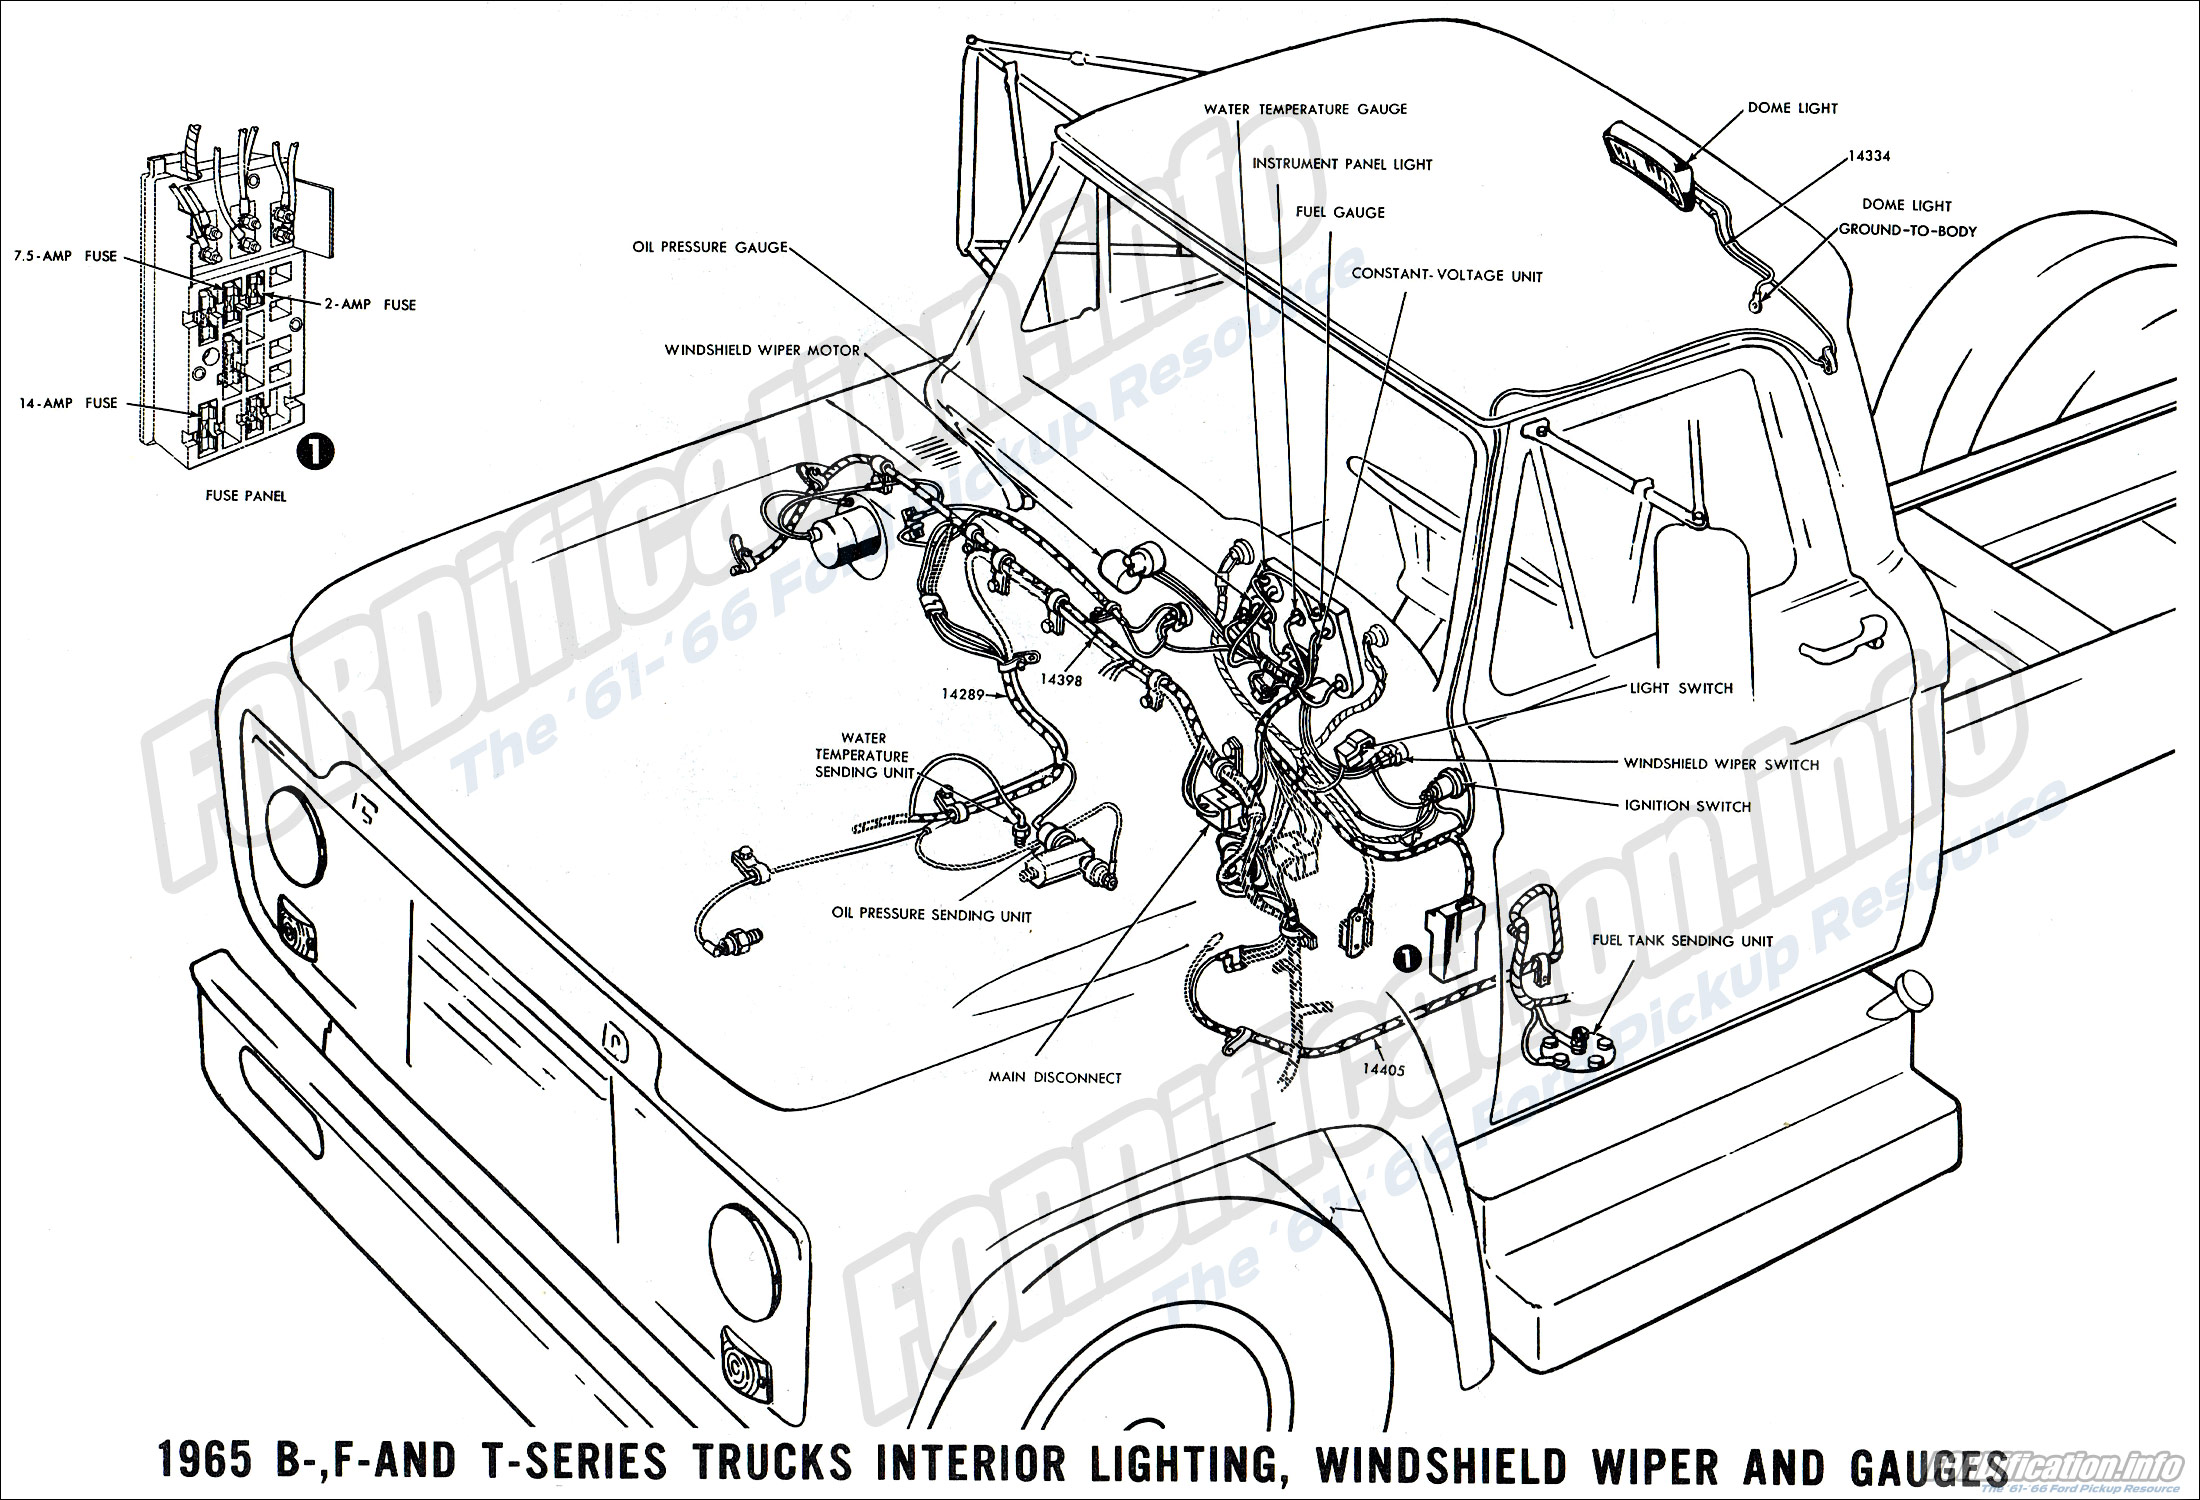 Ford Mustang Ignition Coil Wiring